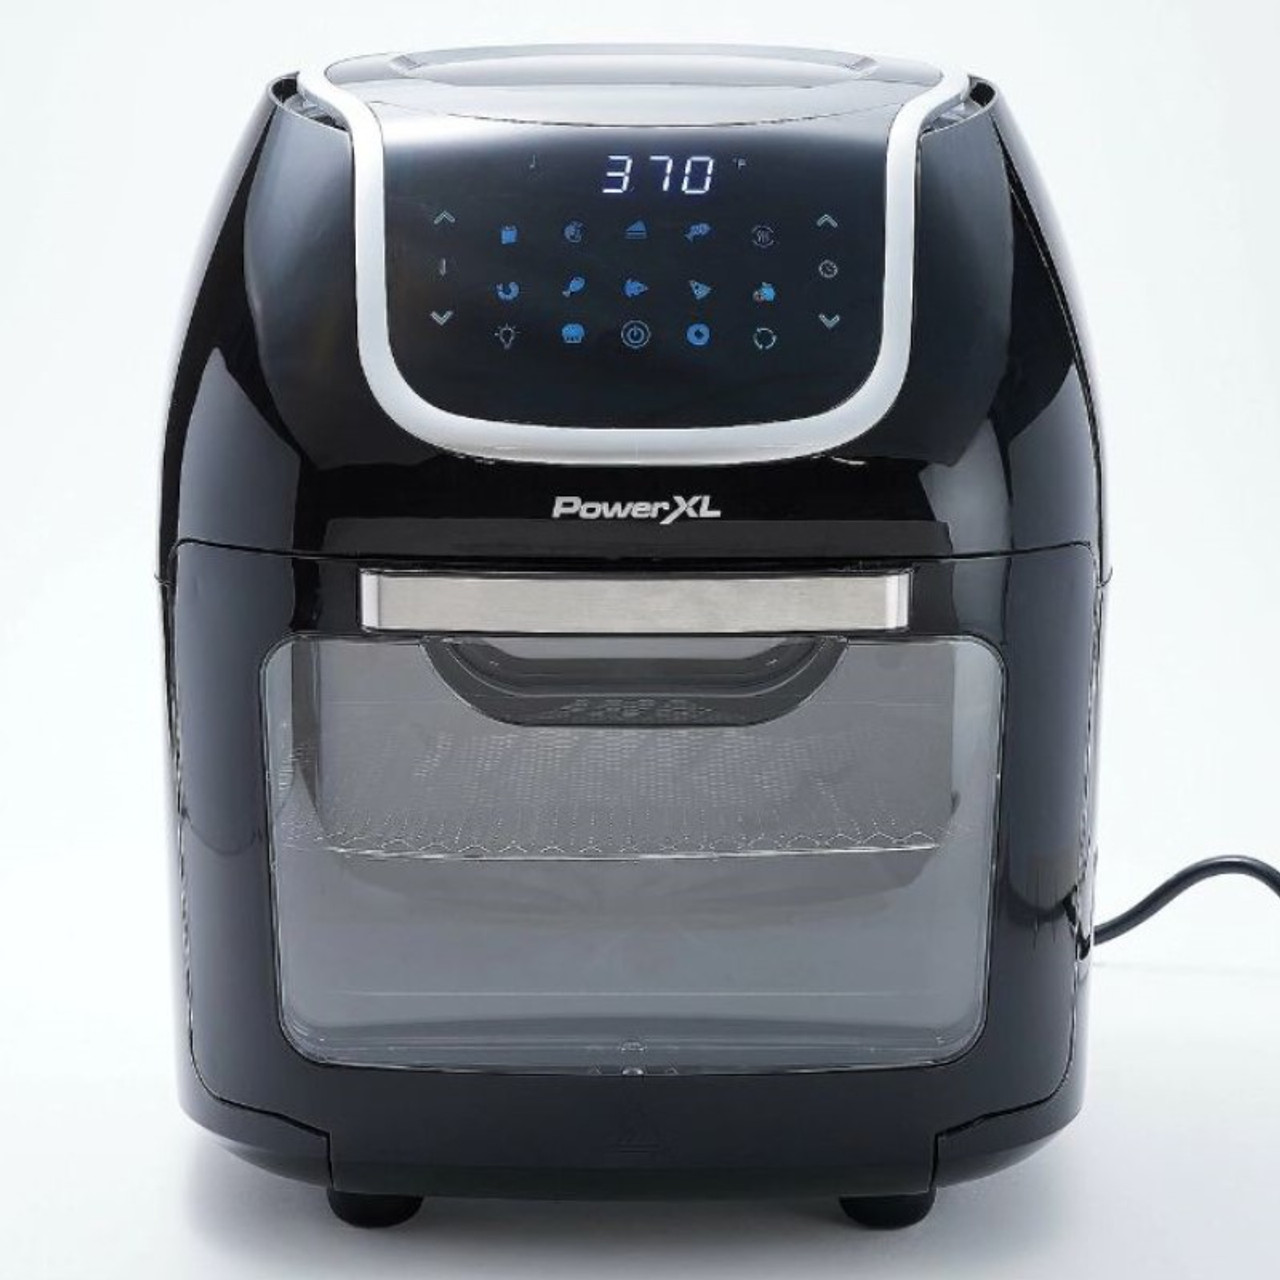 PowerXL 1700W 10-qt Vortex Air Fryer Pro Oven with Presets and Accessories